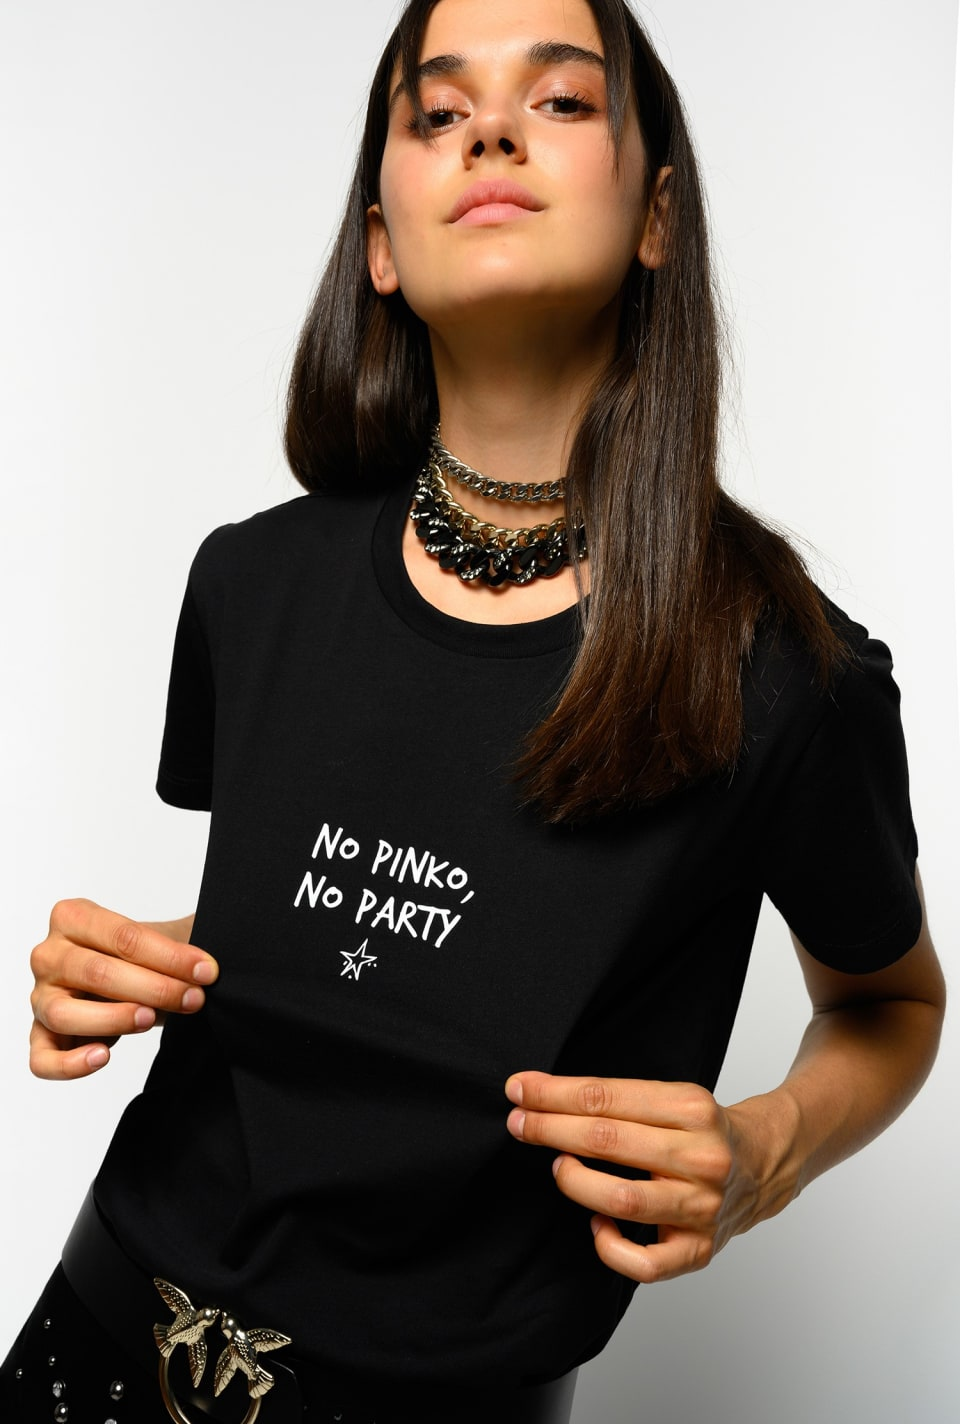 Camiseta NO PINKO NO PARTY - Pinko